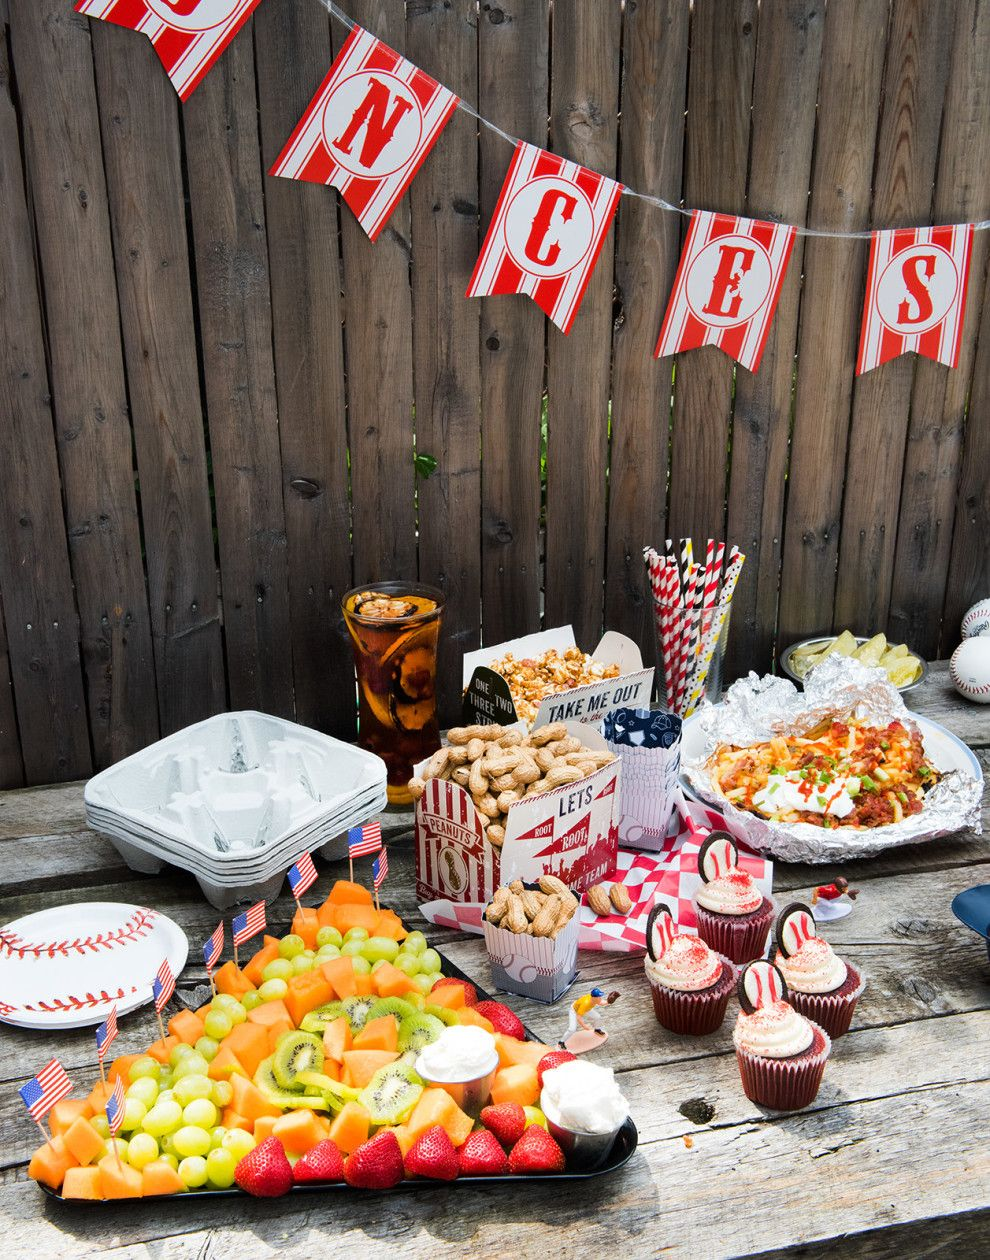 11 grilling ideas for people who love both baseball and